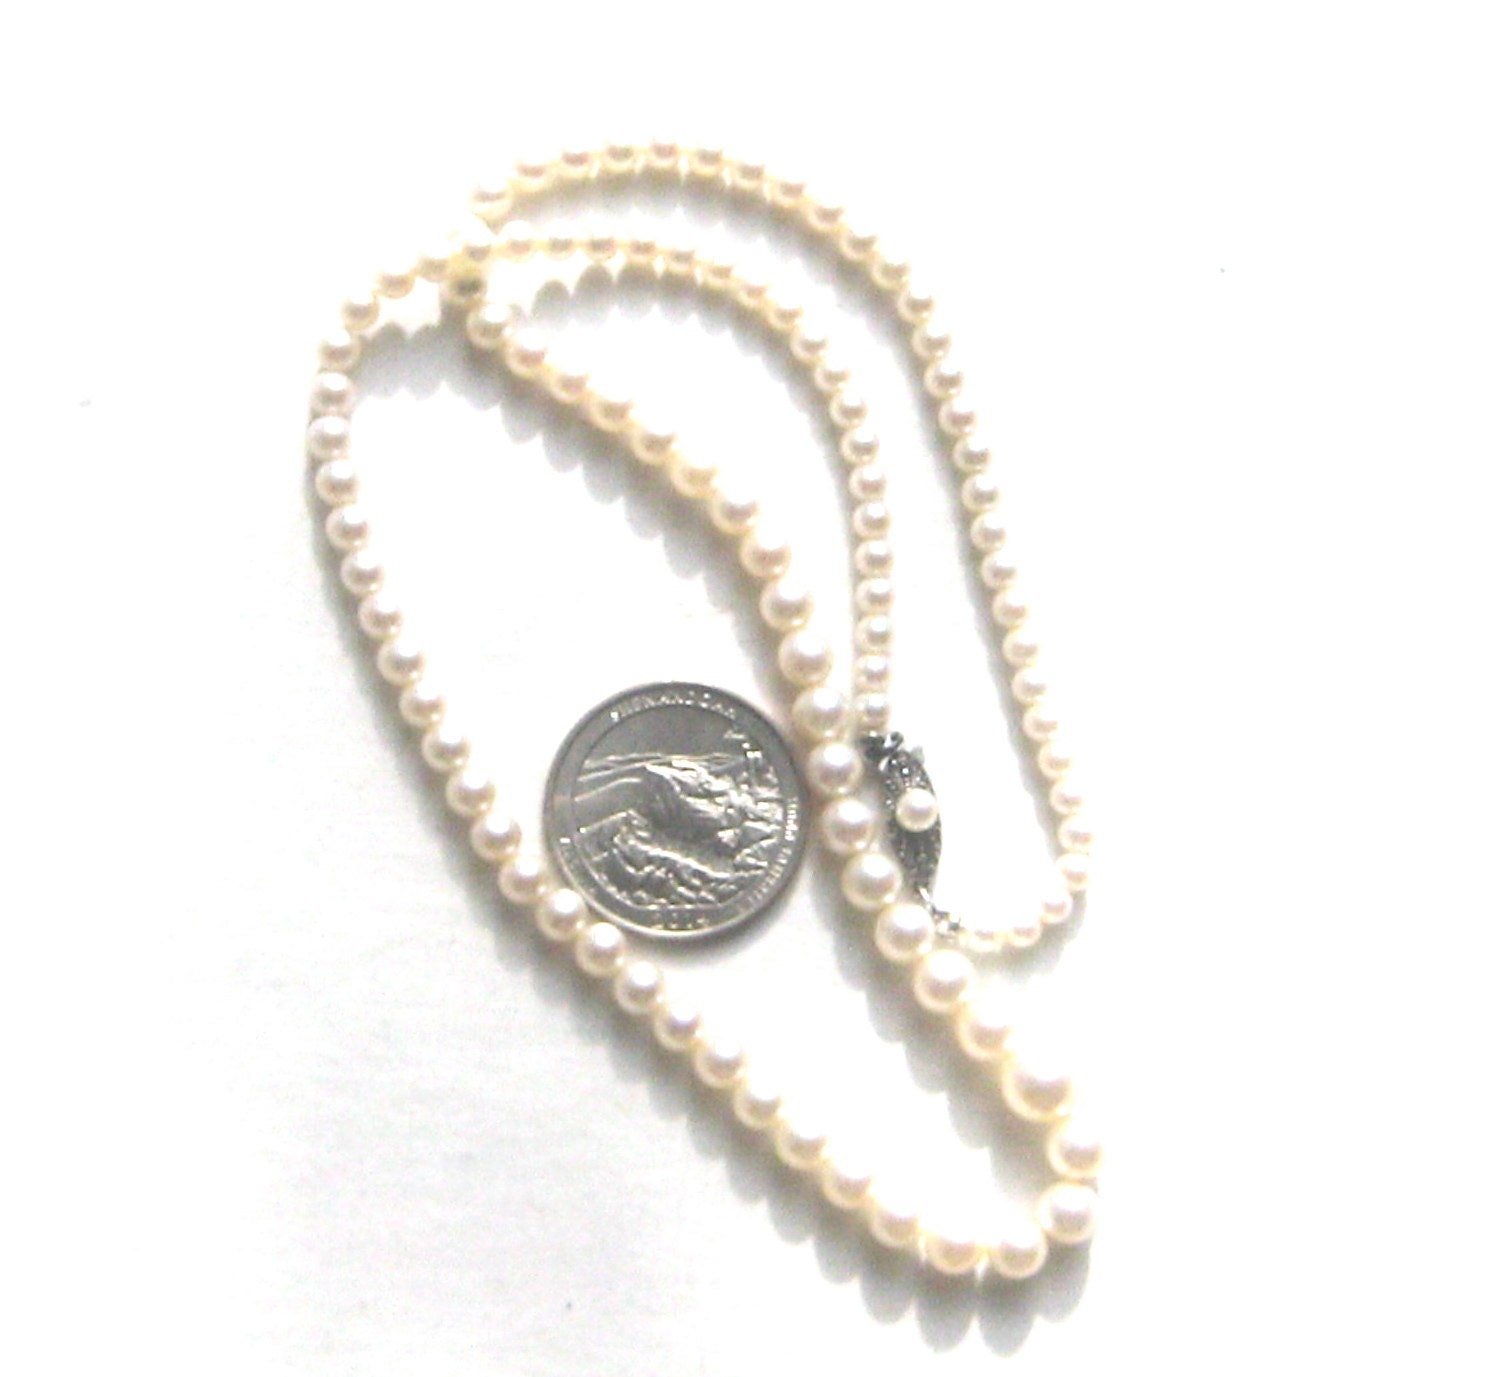 Pearl Necklace Clasp: Mikimoto Pearl Necklace White Akoya Nacre Jewelry Ornate Clasp